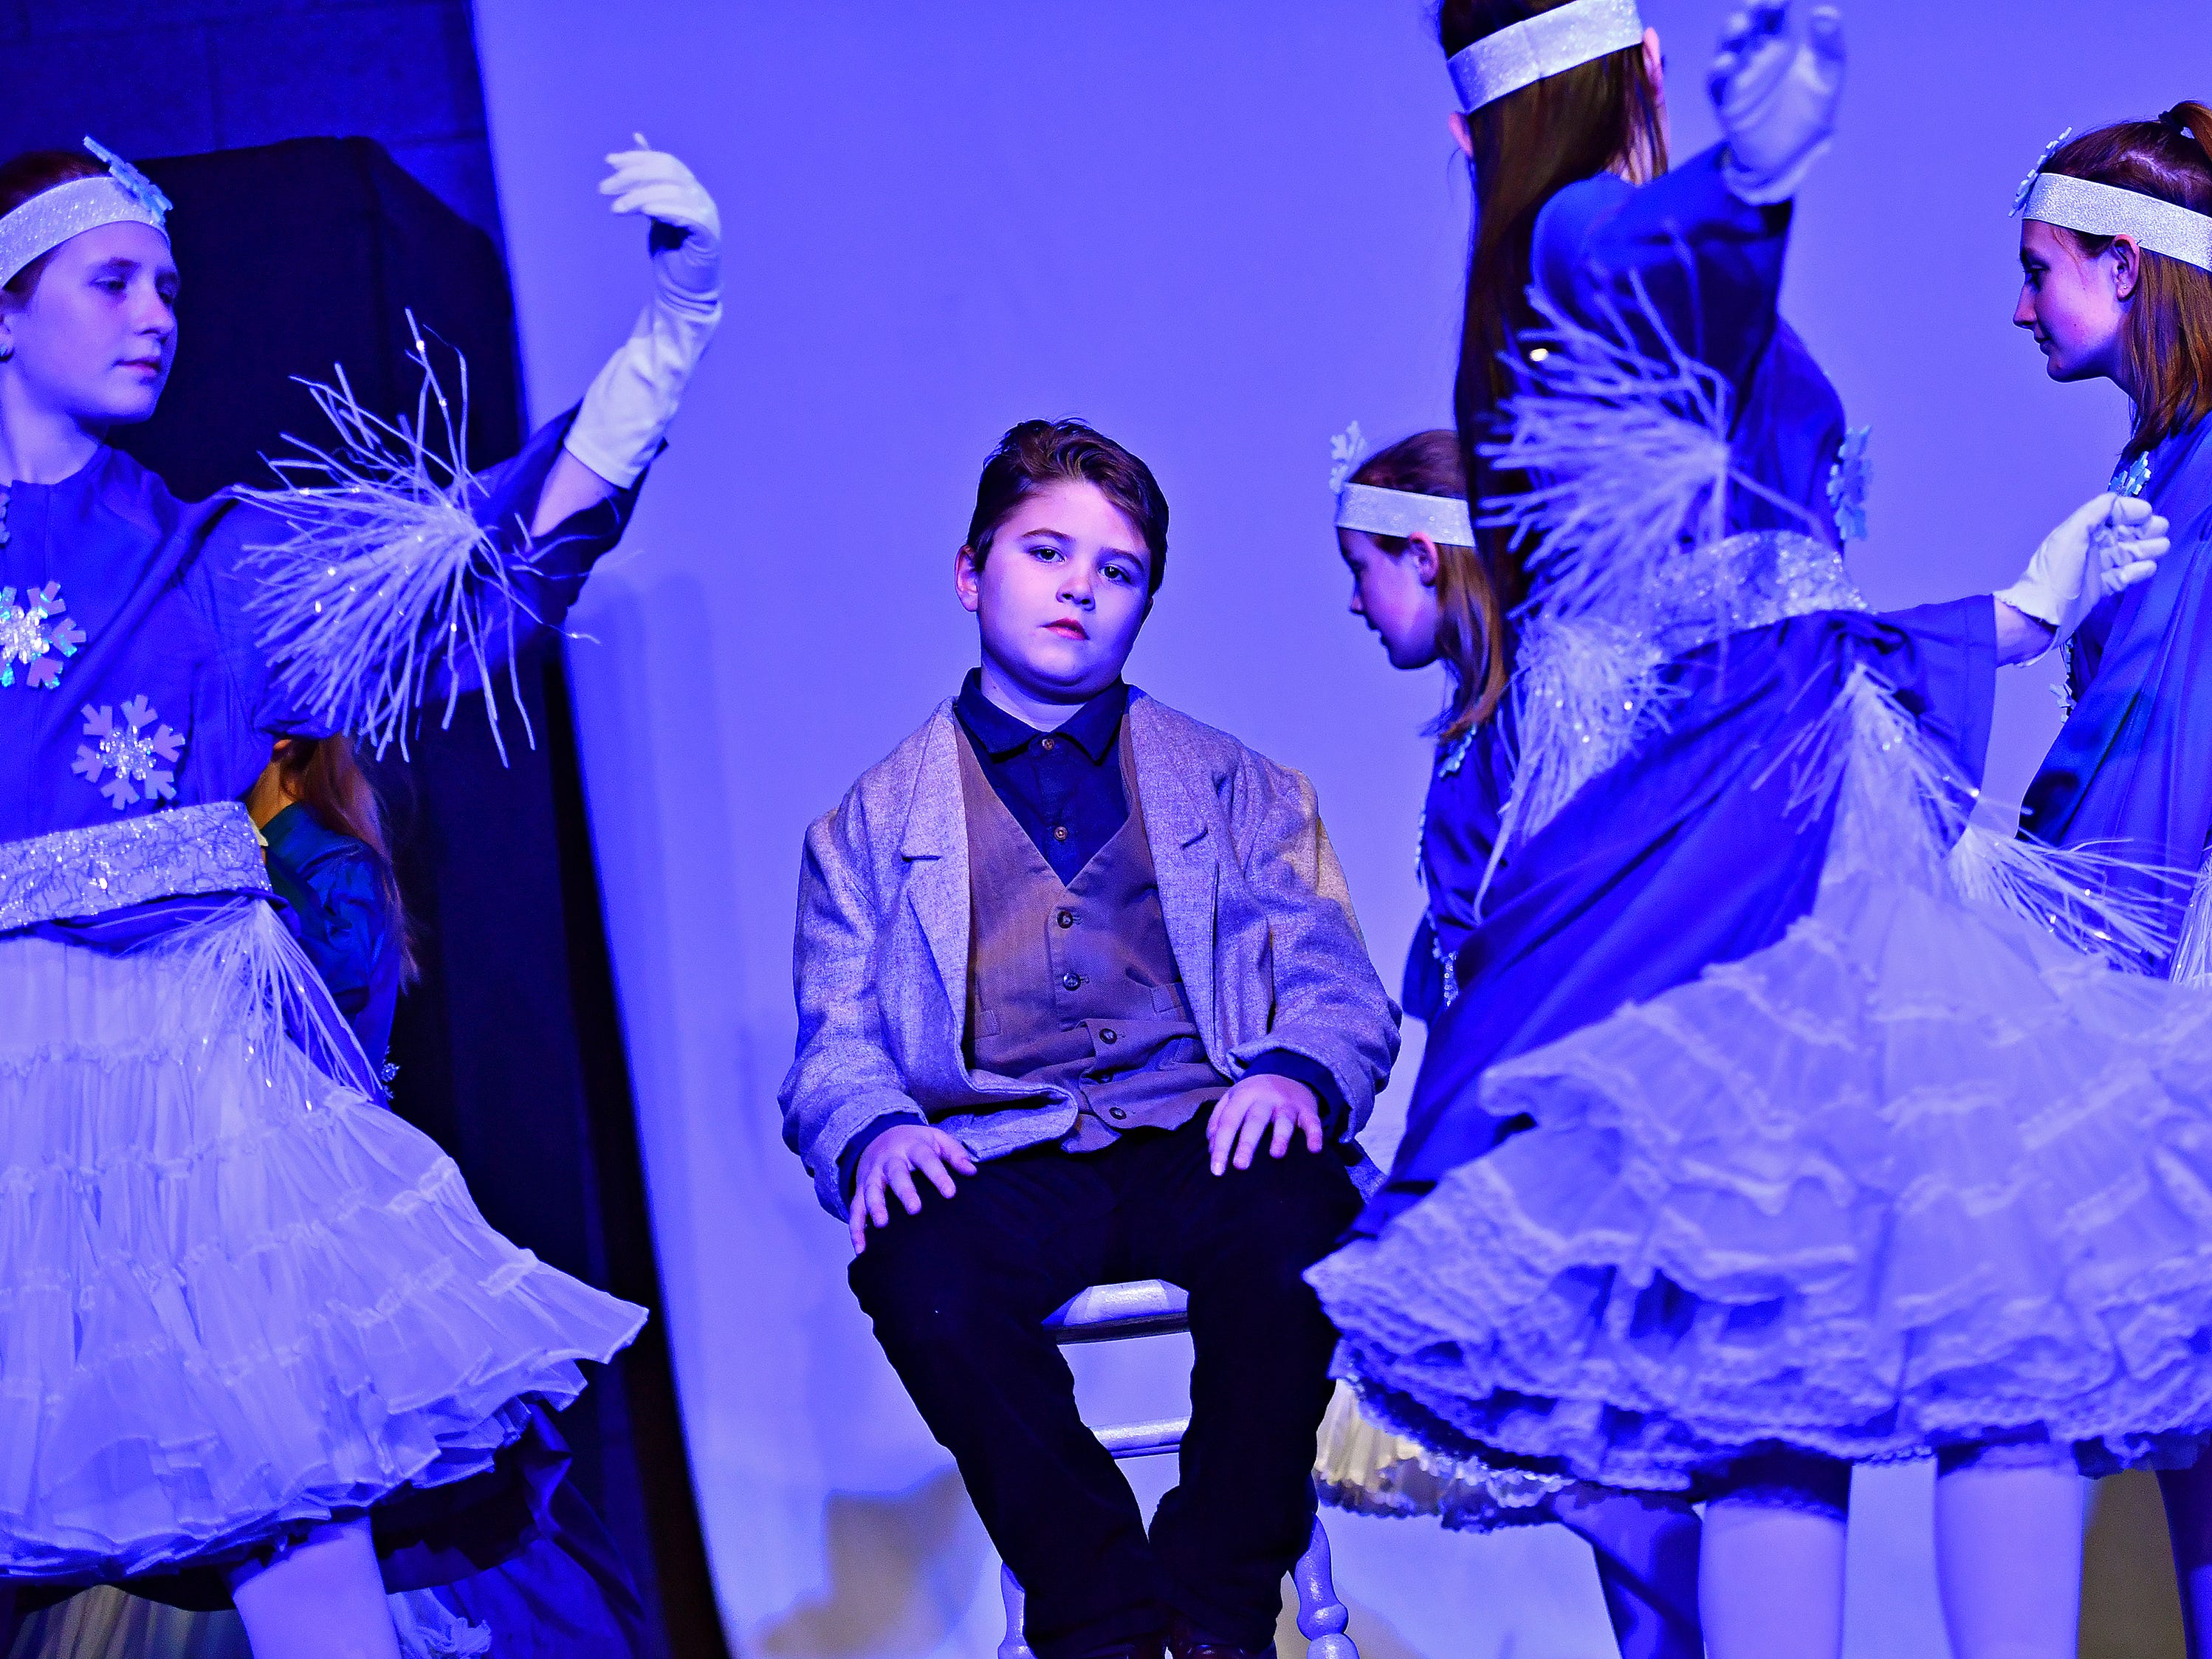 Kay (Brock Gilson, 10), center, during dress rehearsal for The Snow Queen, performed by Theatre Arts for Everyone, at Logos Academy in York City, Wednesday, March 6, 2019. Performances will be March 8-9 at 7 p.m. with 3 p.m. matinees March 9-10. Dawn J. Sagert photo